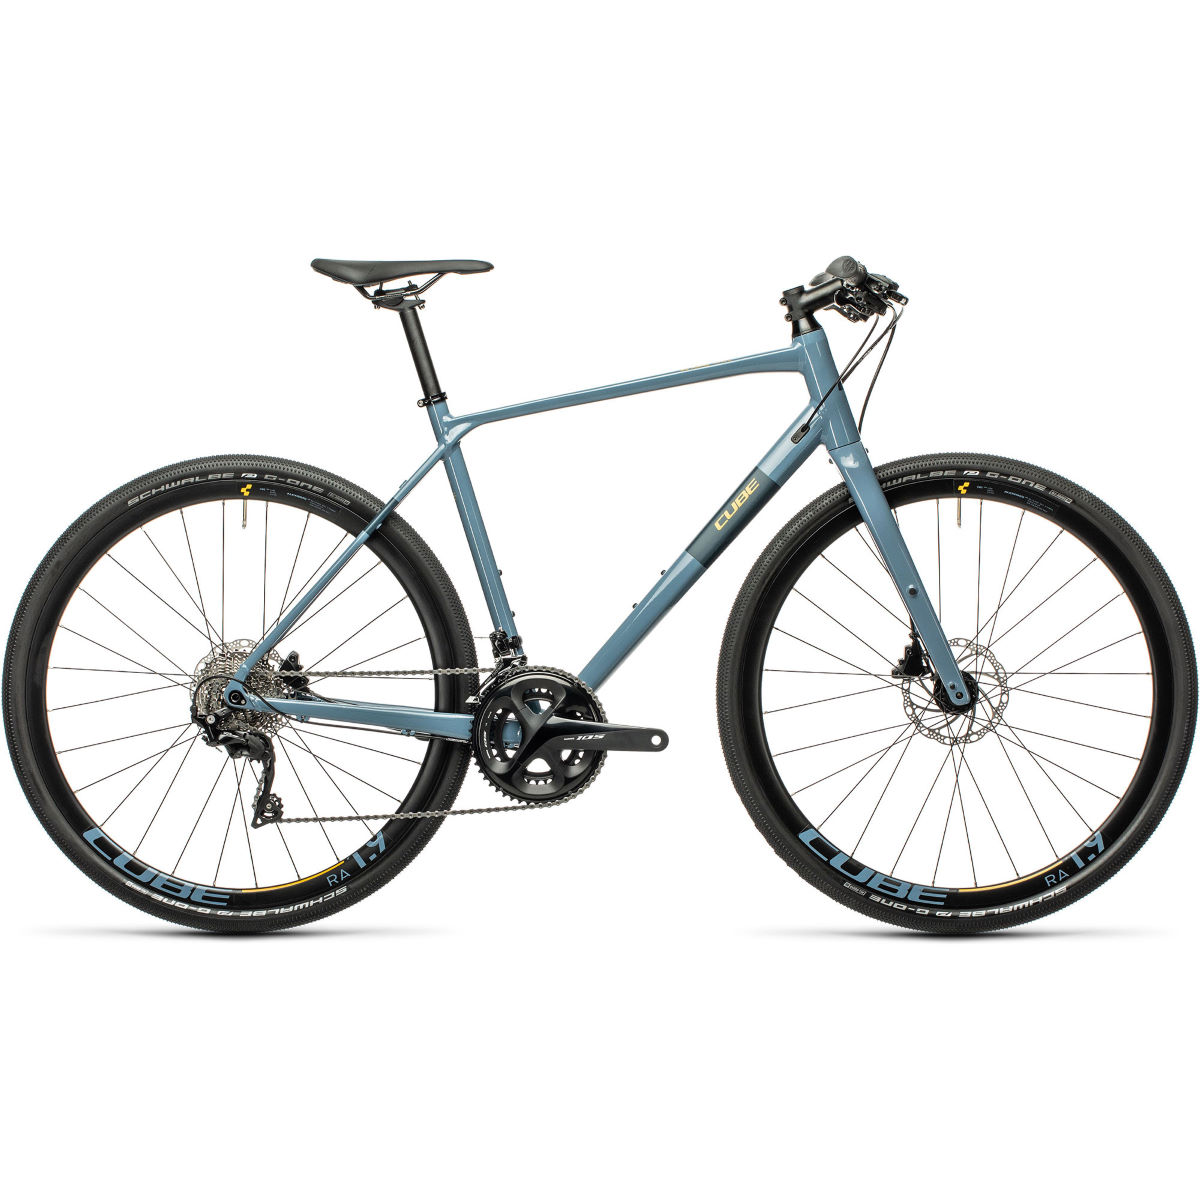 Cube Cube SL Road Race Bike (2021)   Hybrid Bikes